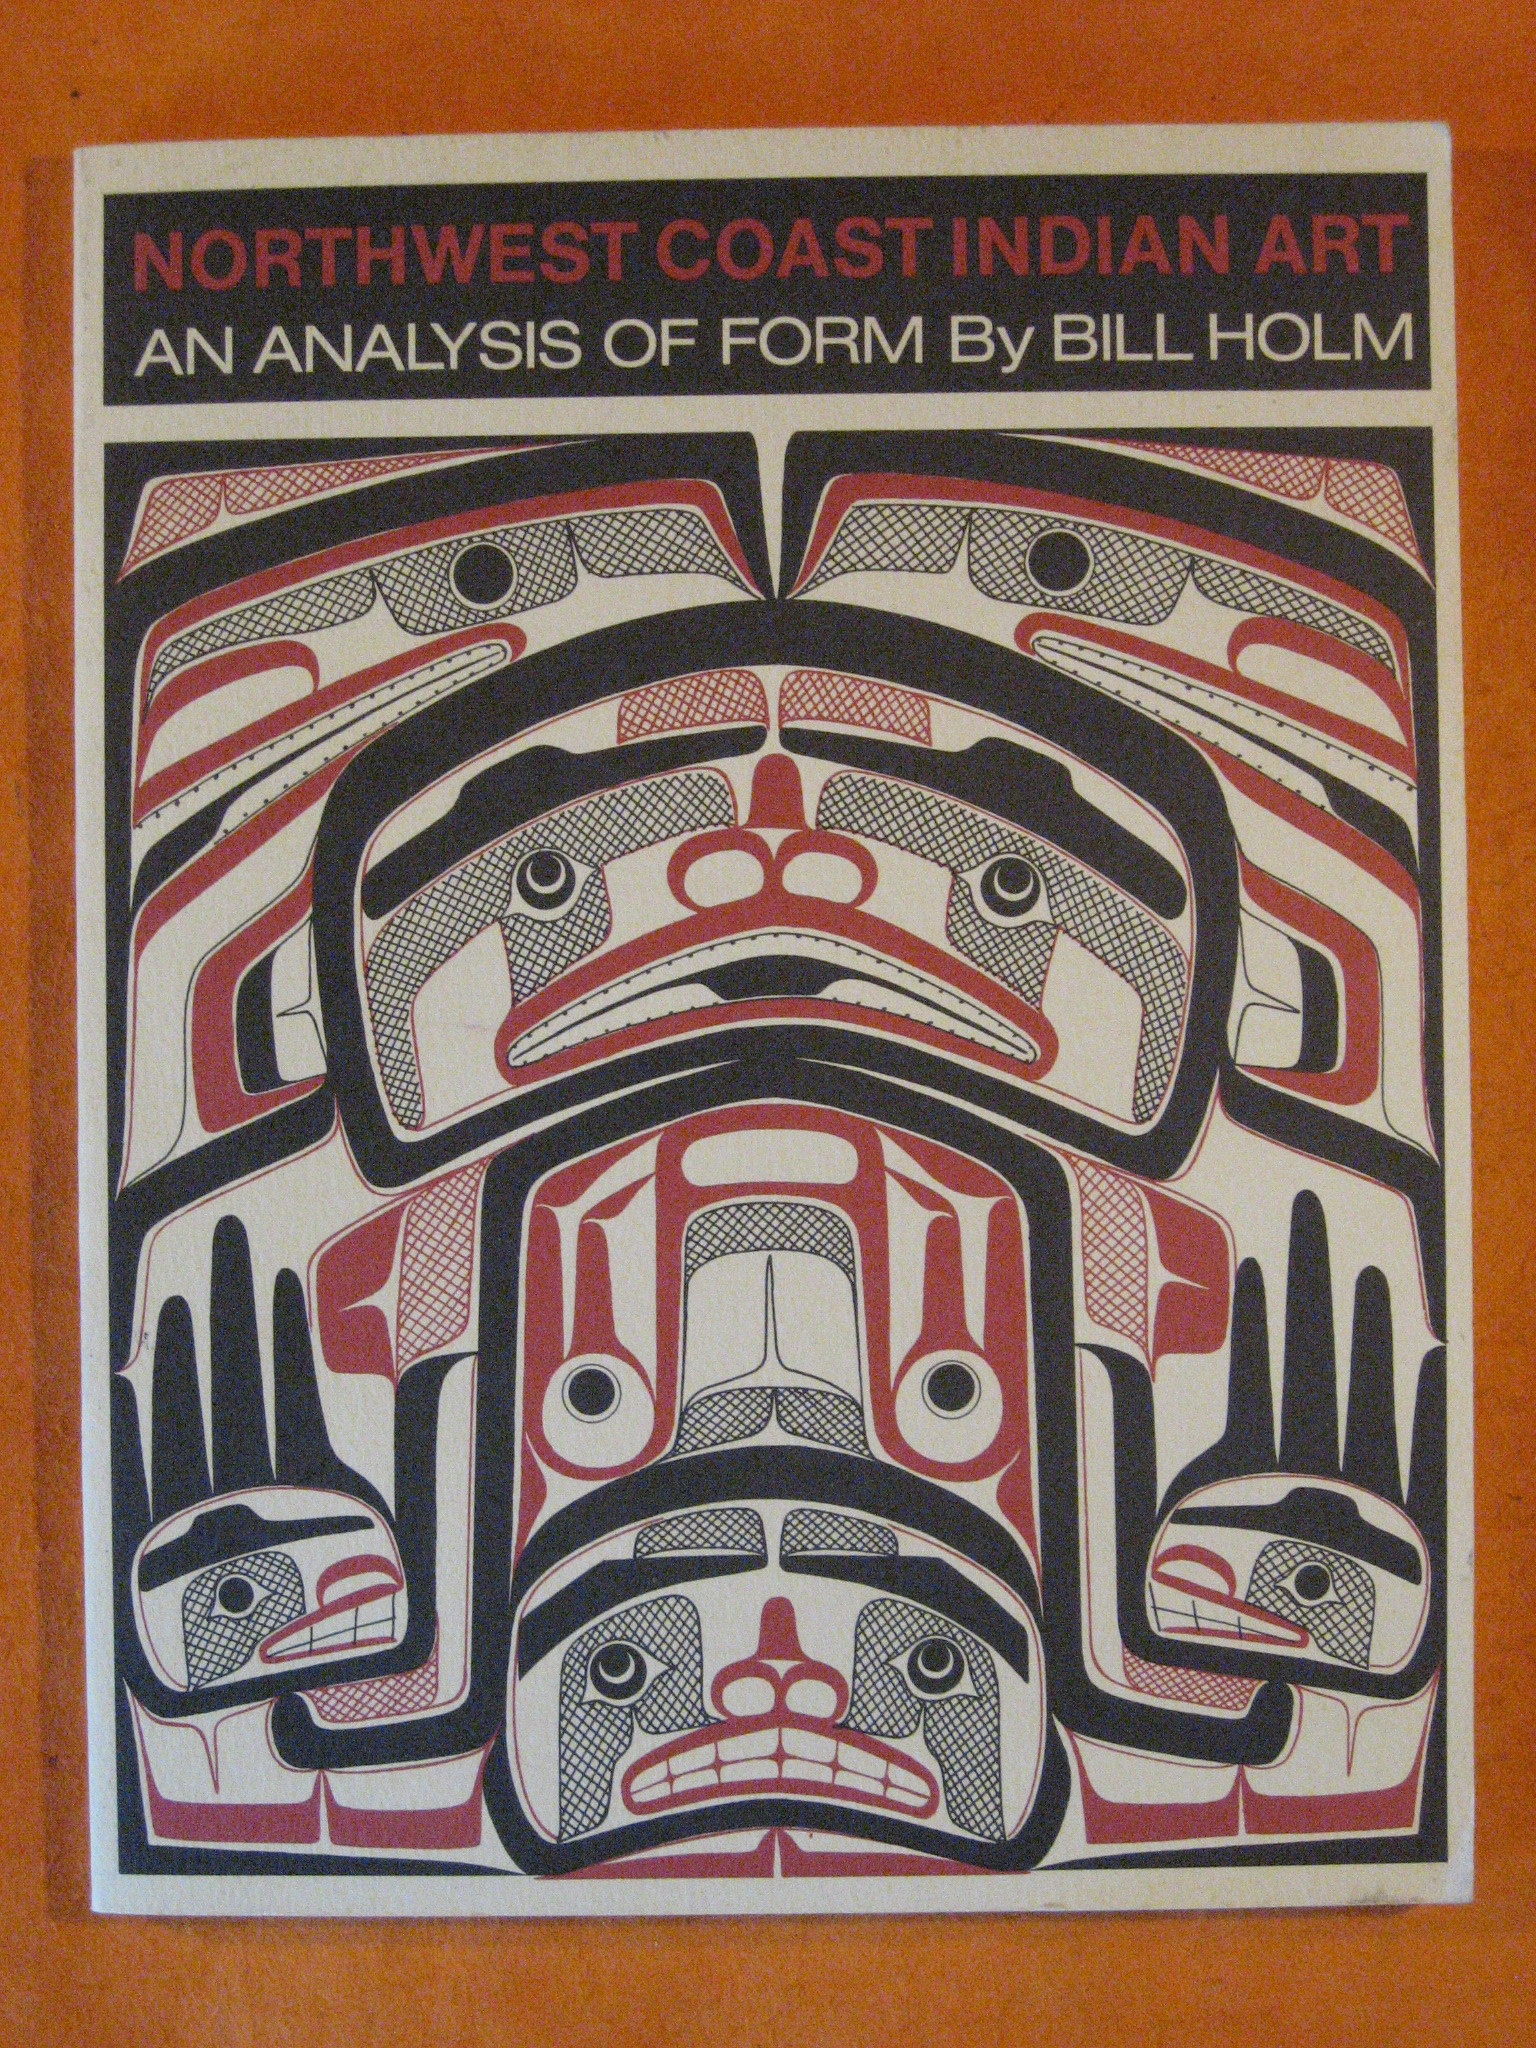 Northwest Coast Indian Art: An Analysis of Form, Bill Holm